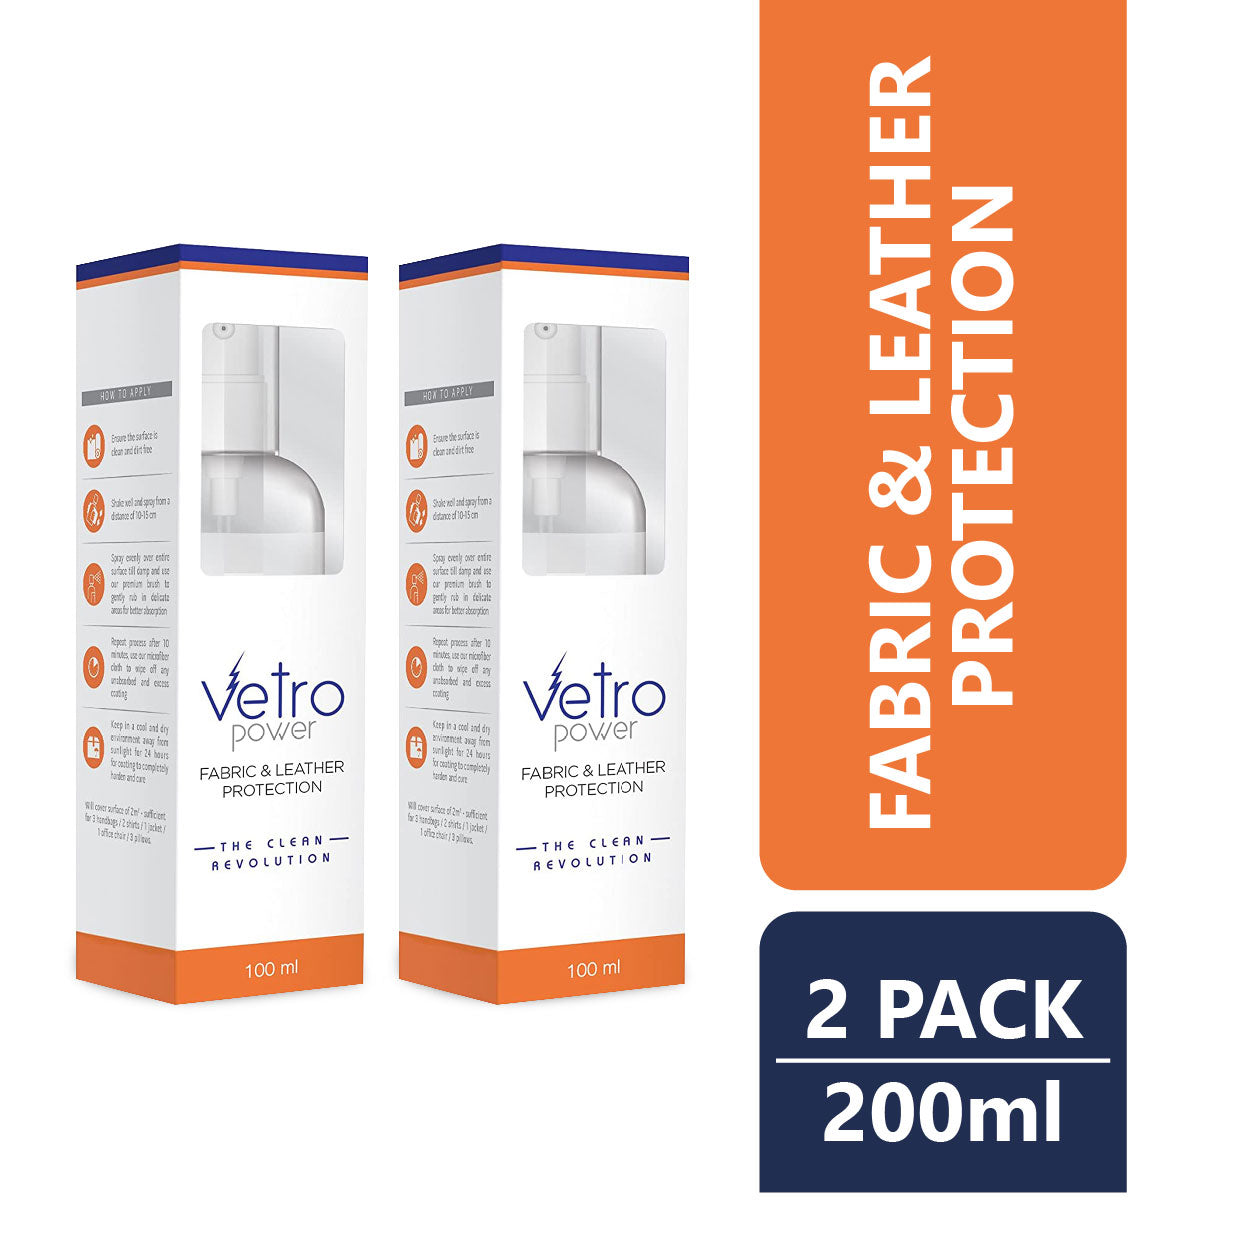 Vetro Power Fabric & Leather Protection 100ml - (Pack of 2)